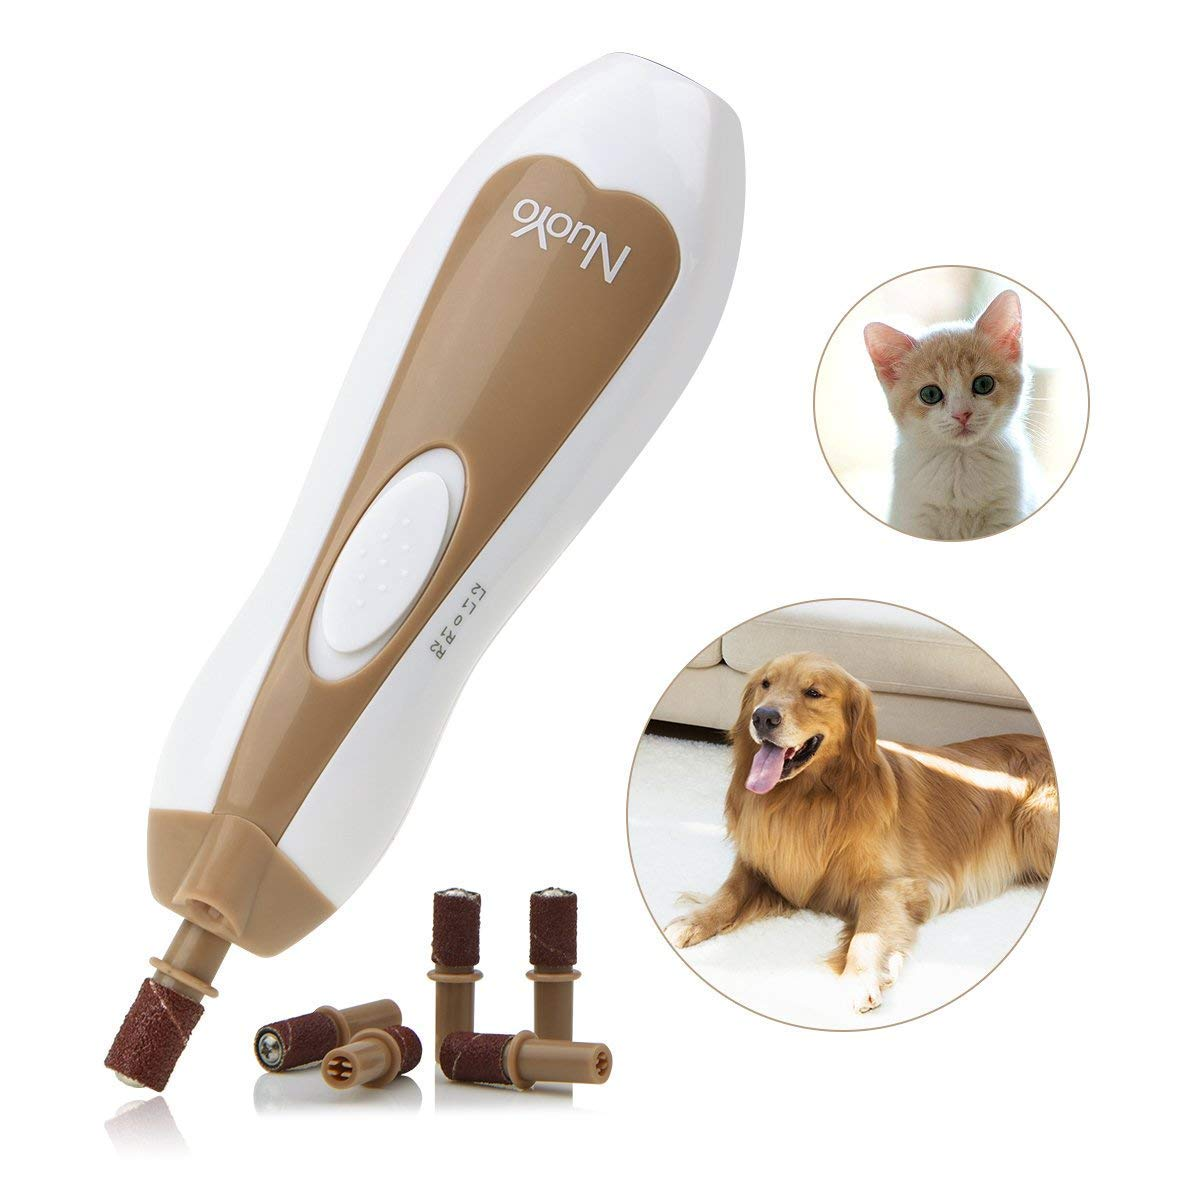 Electric Pet Nail Grinder, Paw Trimmer Clipper, Grooming,Trimming, Shaping, and Smoothing Tool with 6 Sanding Bands for Dogs Cats and Other Small & Medium Pets